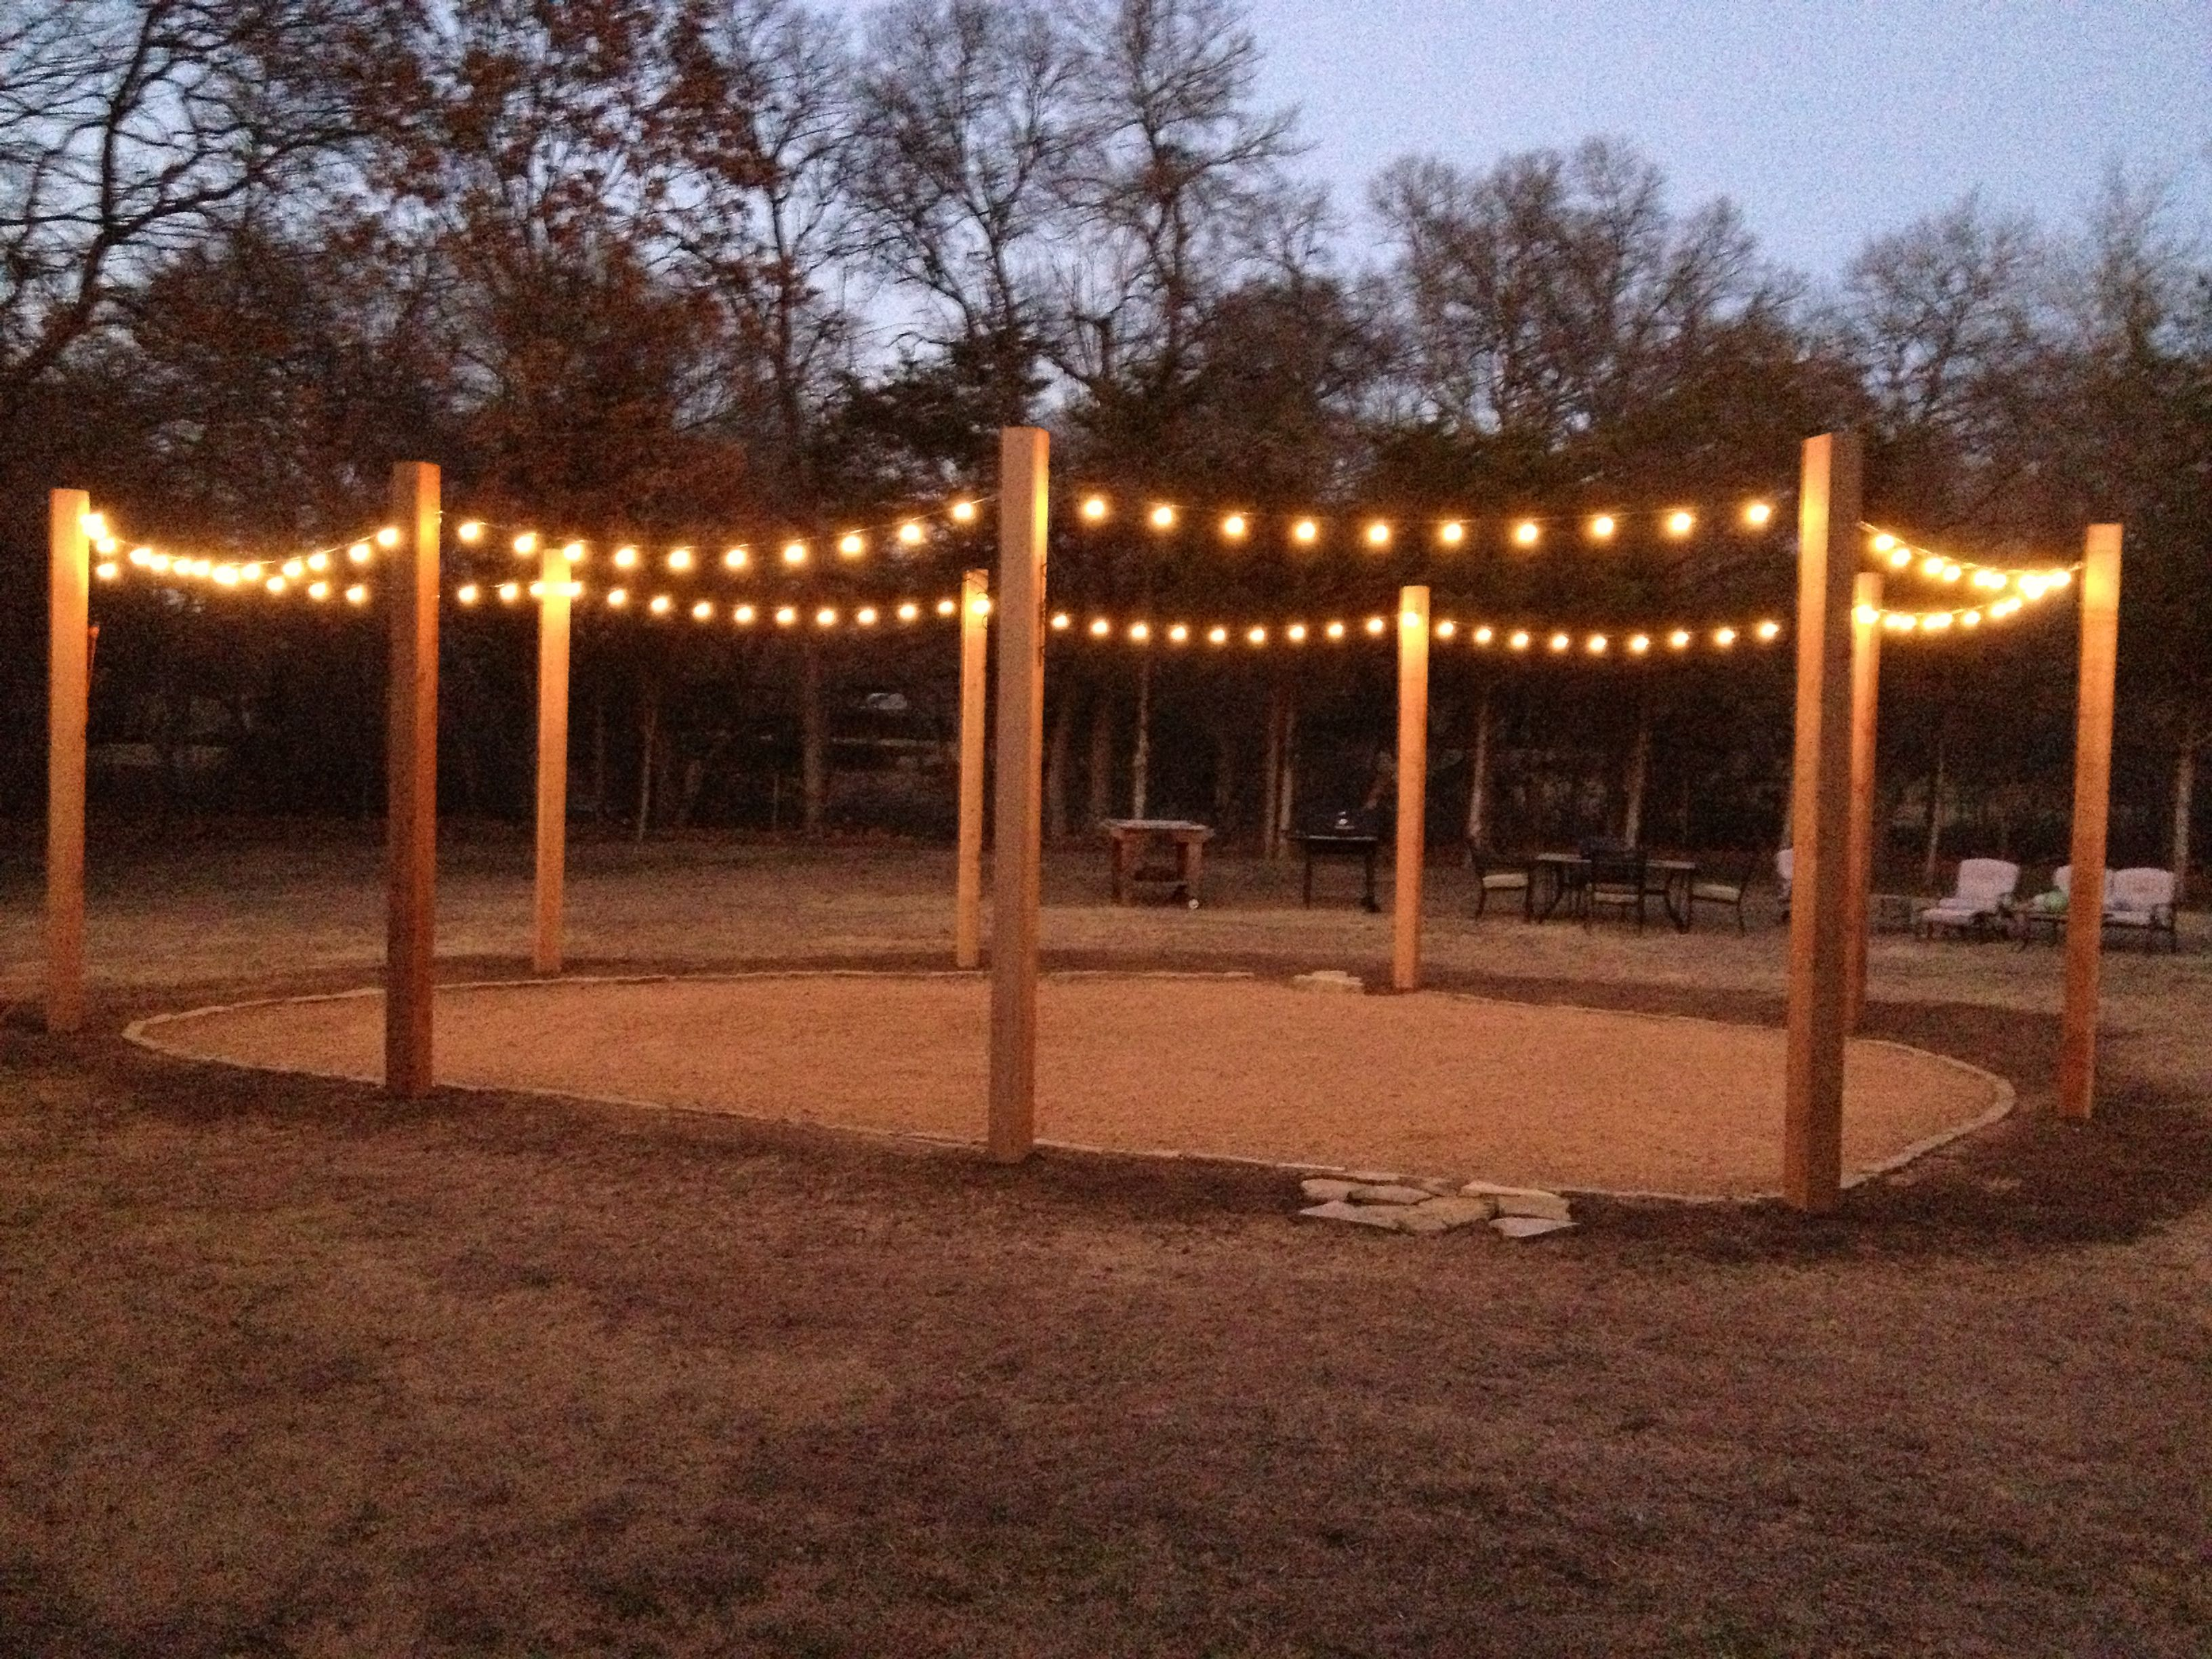 6x6x12 cedar posts turned into our string light patio Love it